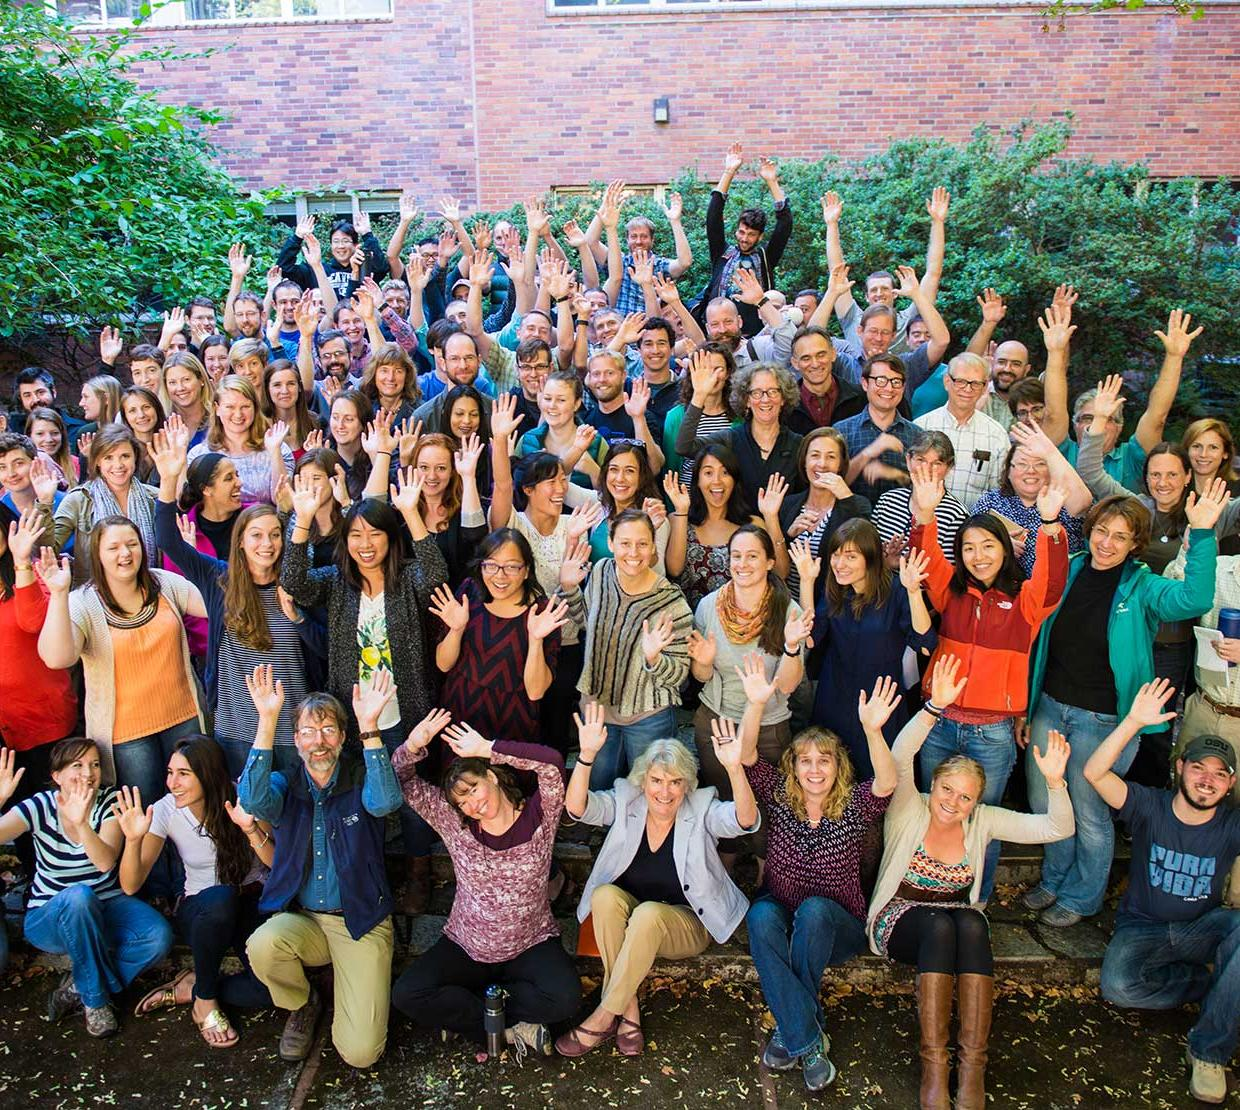 zoology department group photo outside of Gleason Hall